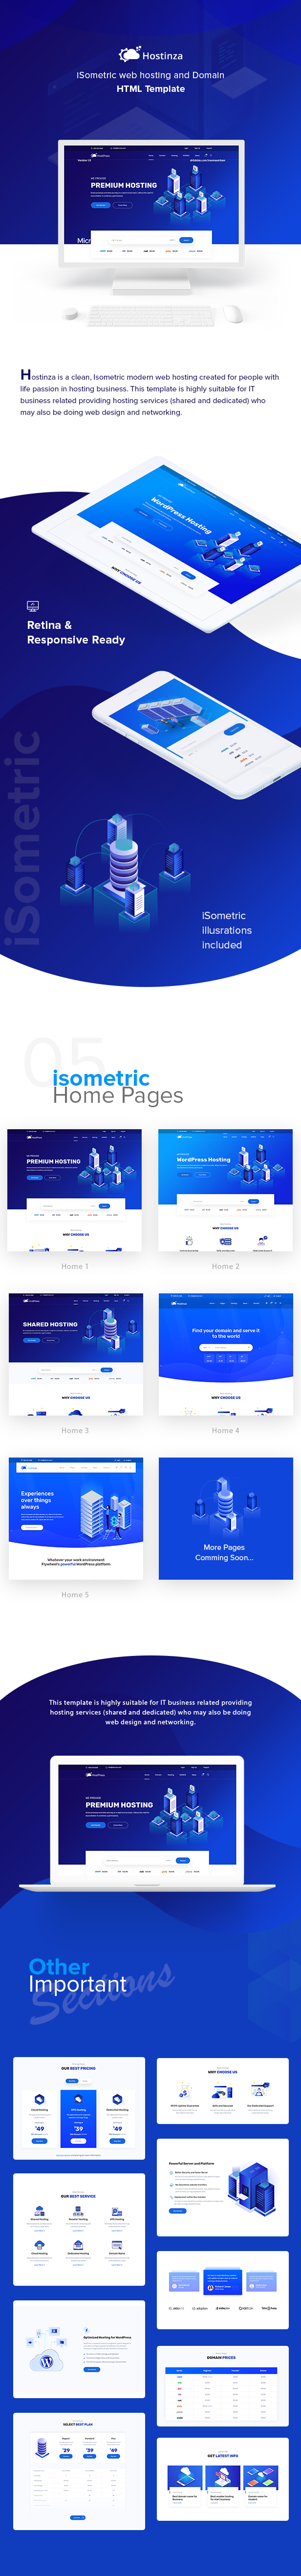 description 1 - Hostinza - Isometric Web Hosting, Domain and WHMCS Html Hosting Template